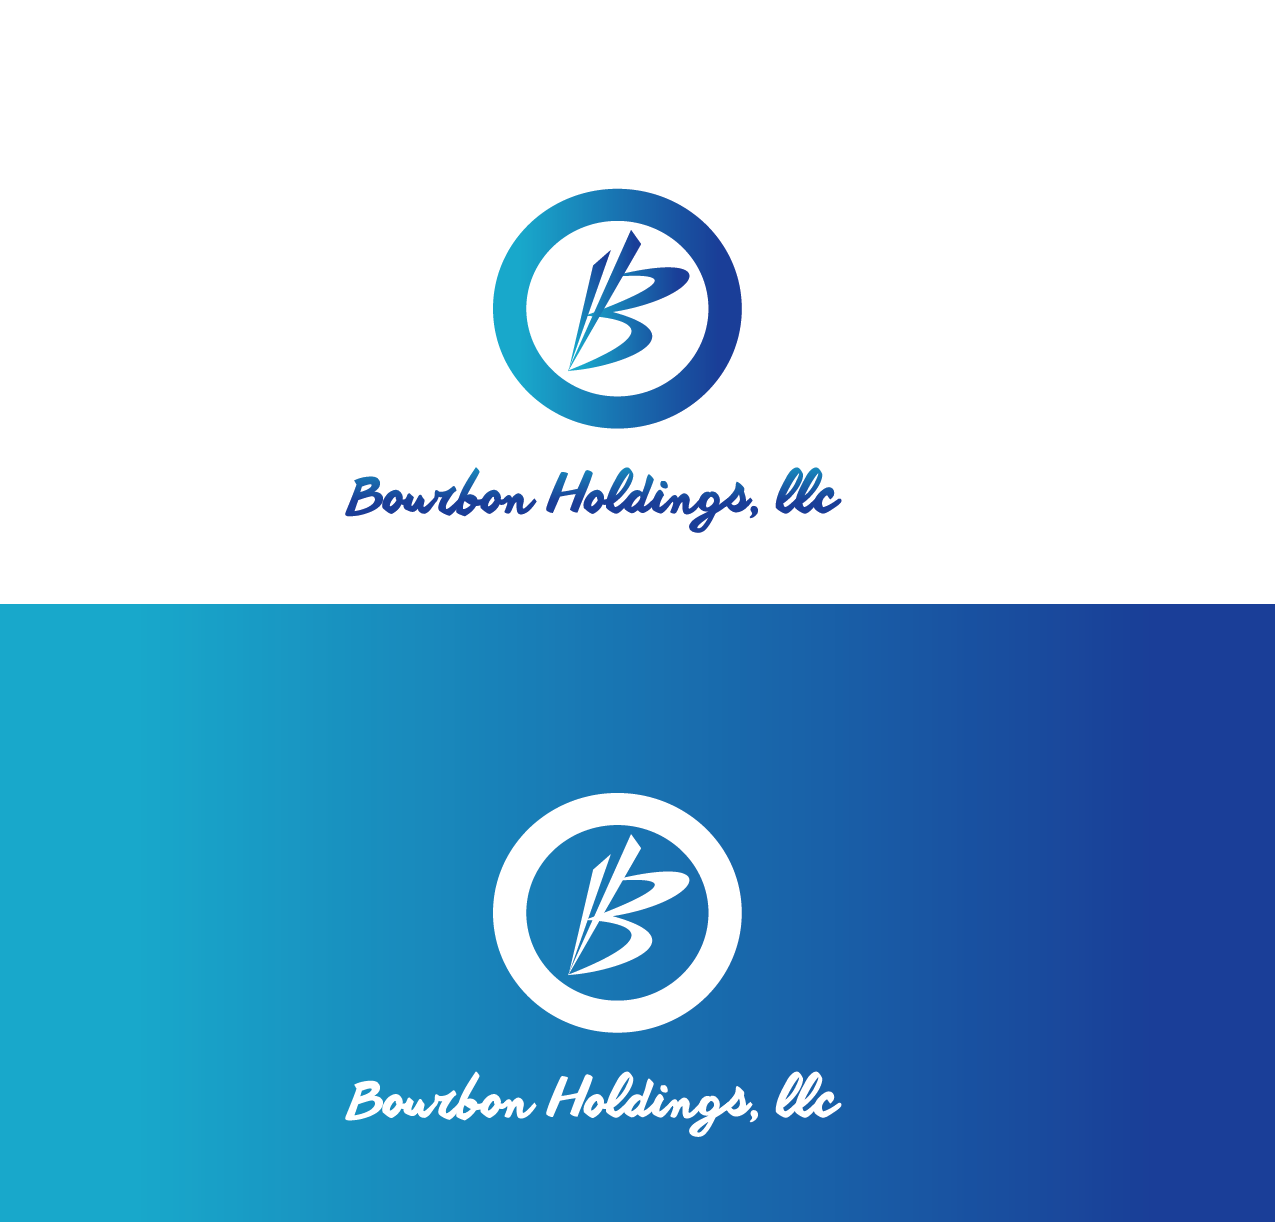 Logo Design by Private User - Entry No. 125 in the Logo Design Contest Logo Design for Bourbon Holdings, LLC.